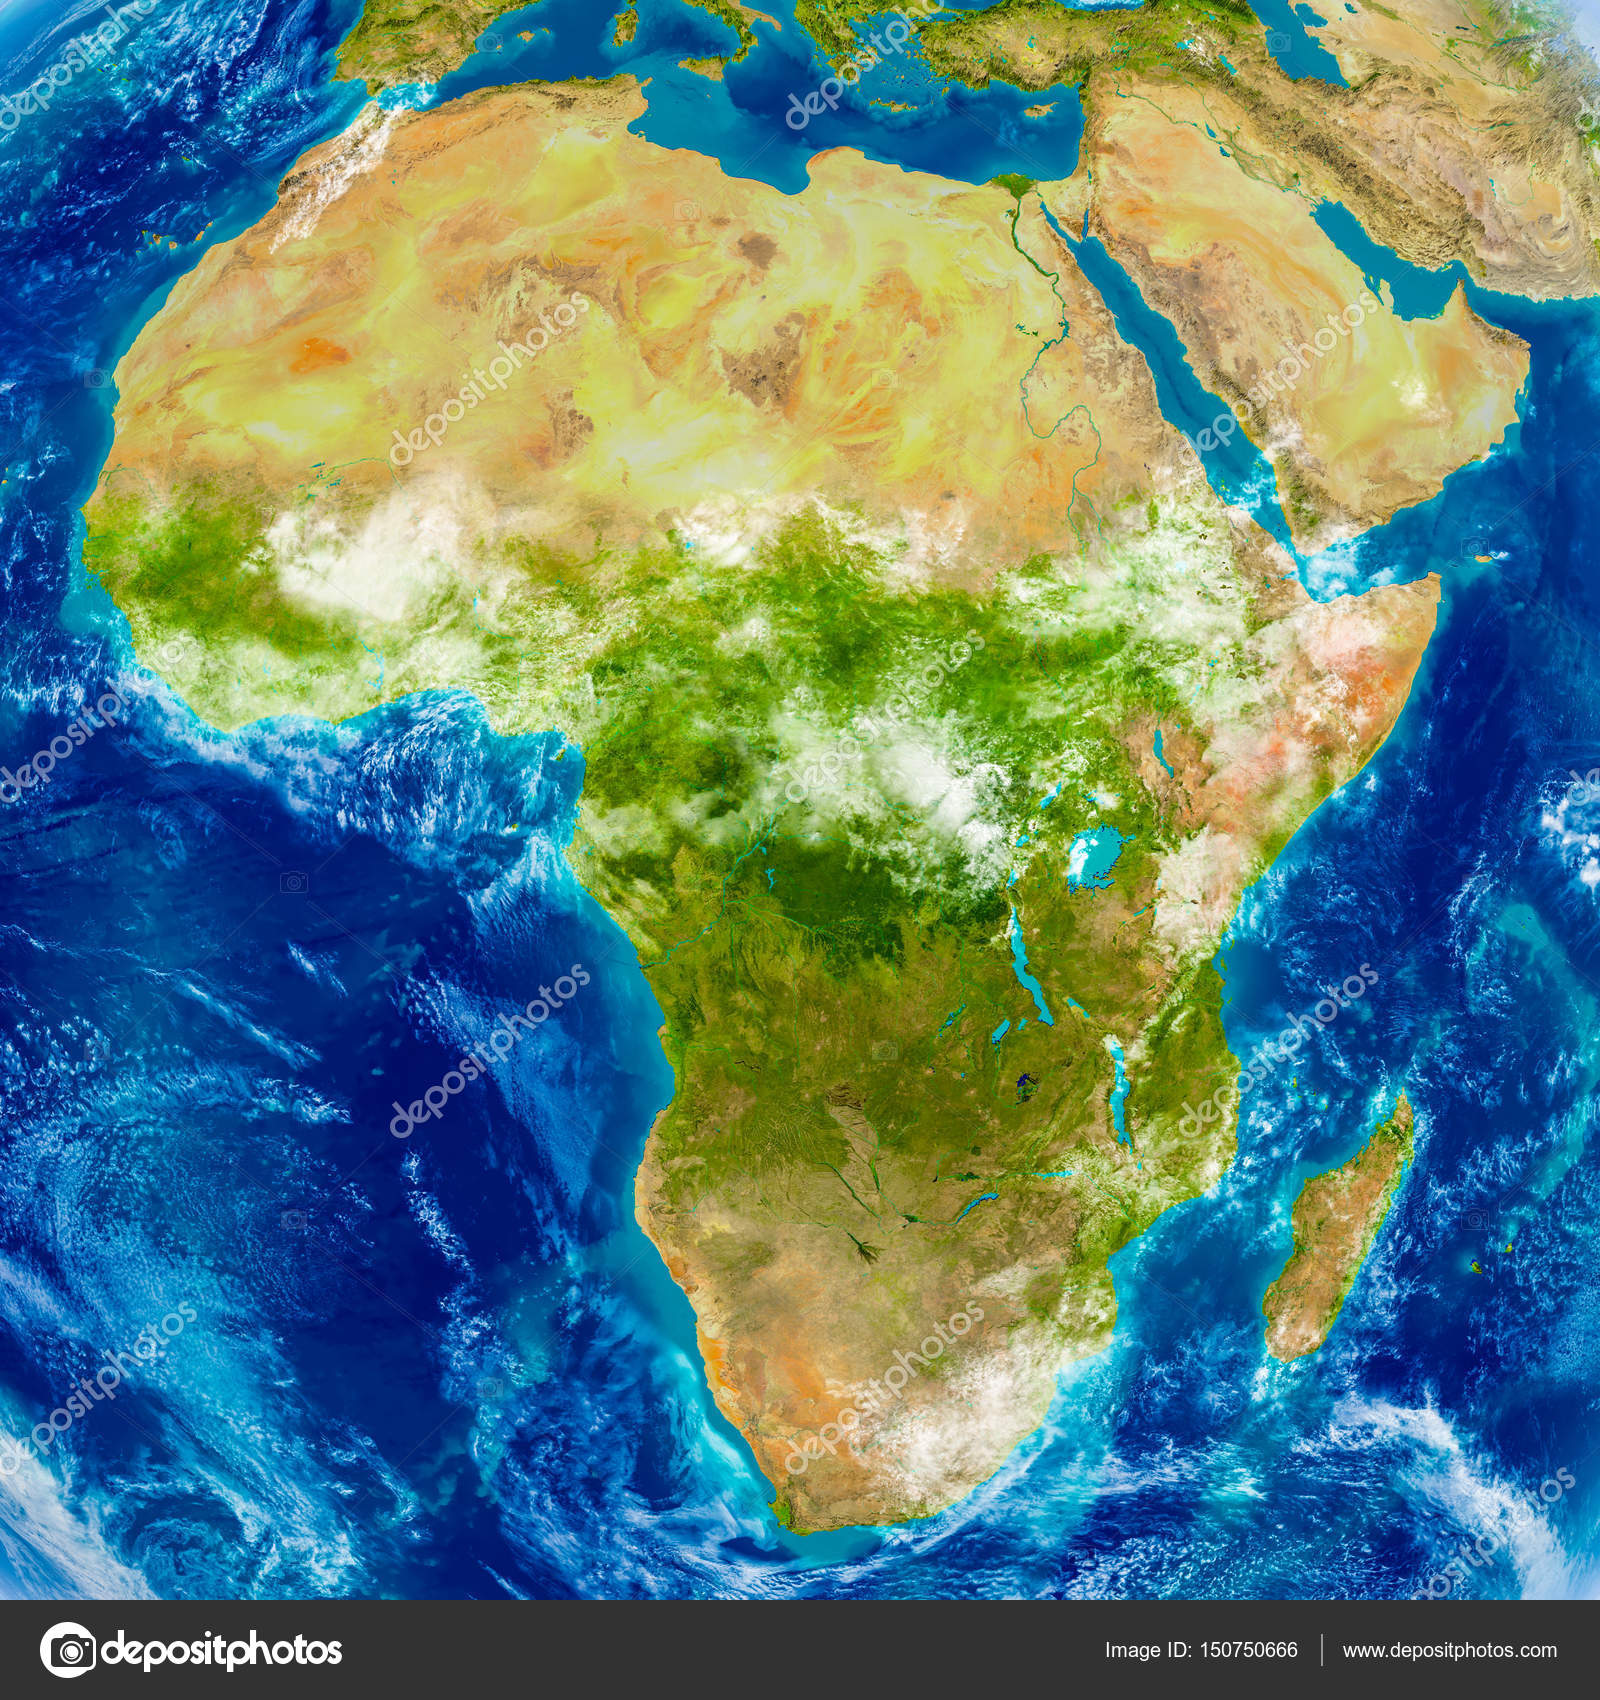 Africa on physical map stock photo tomiger 150750666 africa on physical world map 3d illustration with detailed planet surface elements of this image furnished by nasa photo by tomiger gumiabroncs Image collections